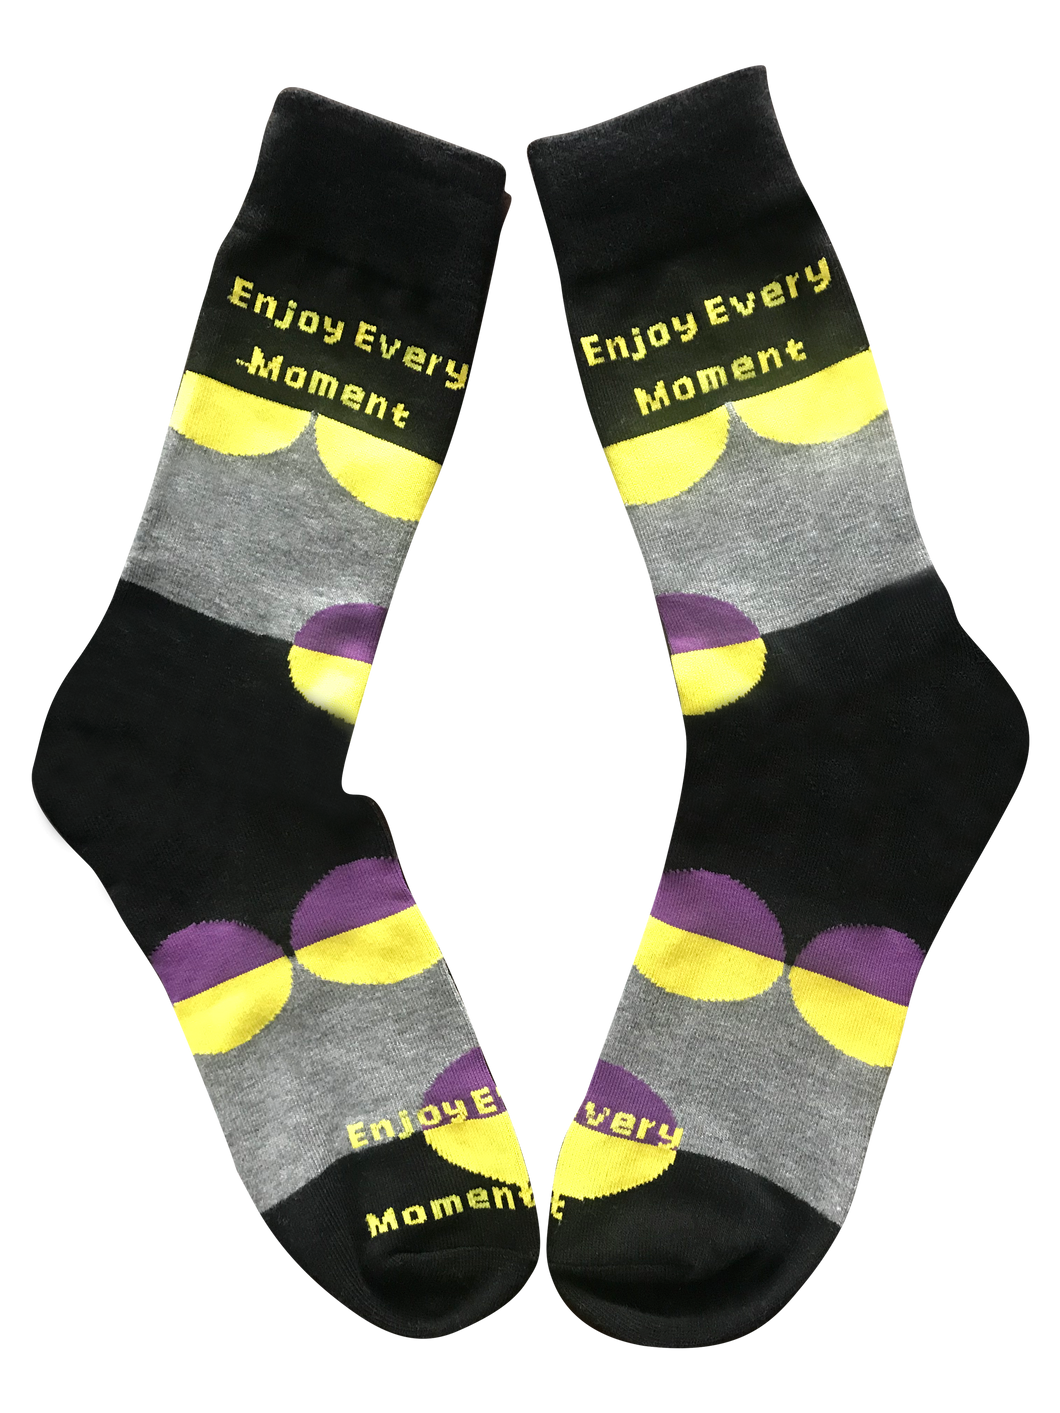 Enjoy Every Moment, Mid Calf Unisex Dress Socks